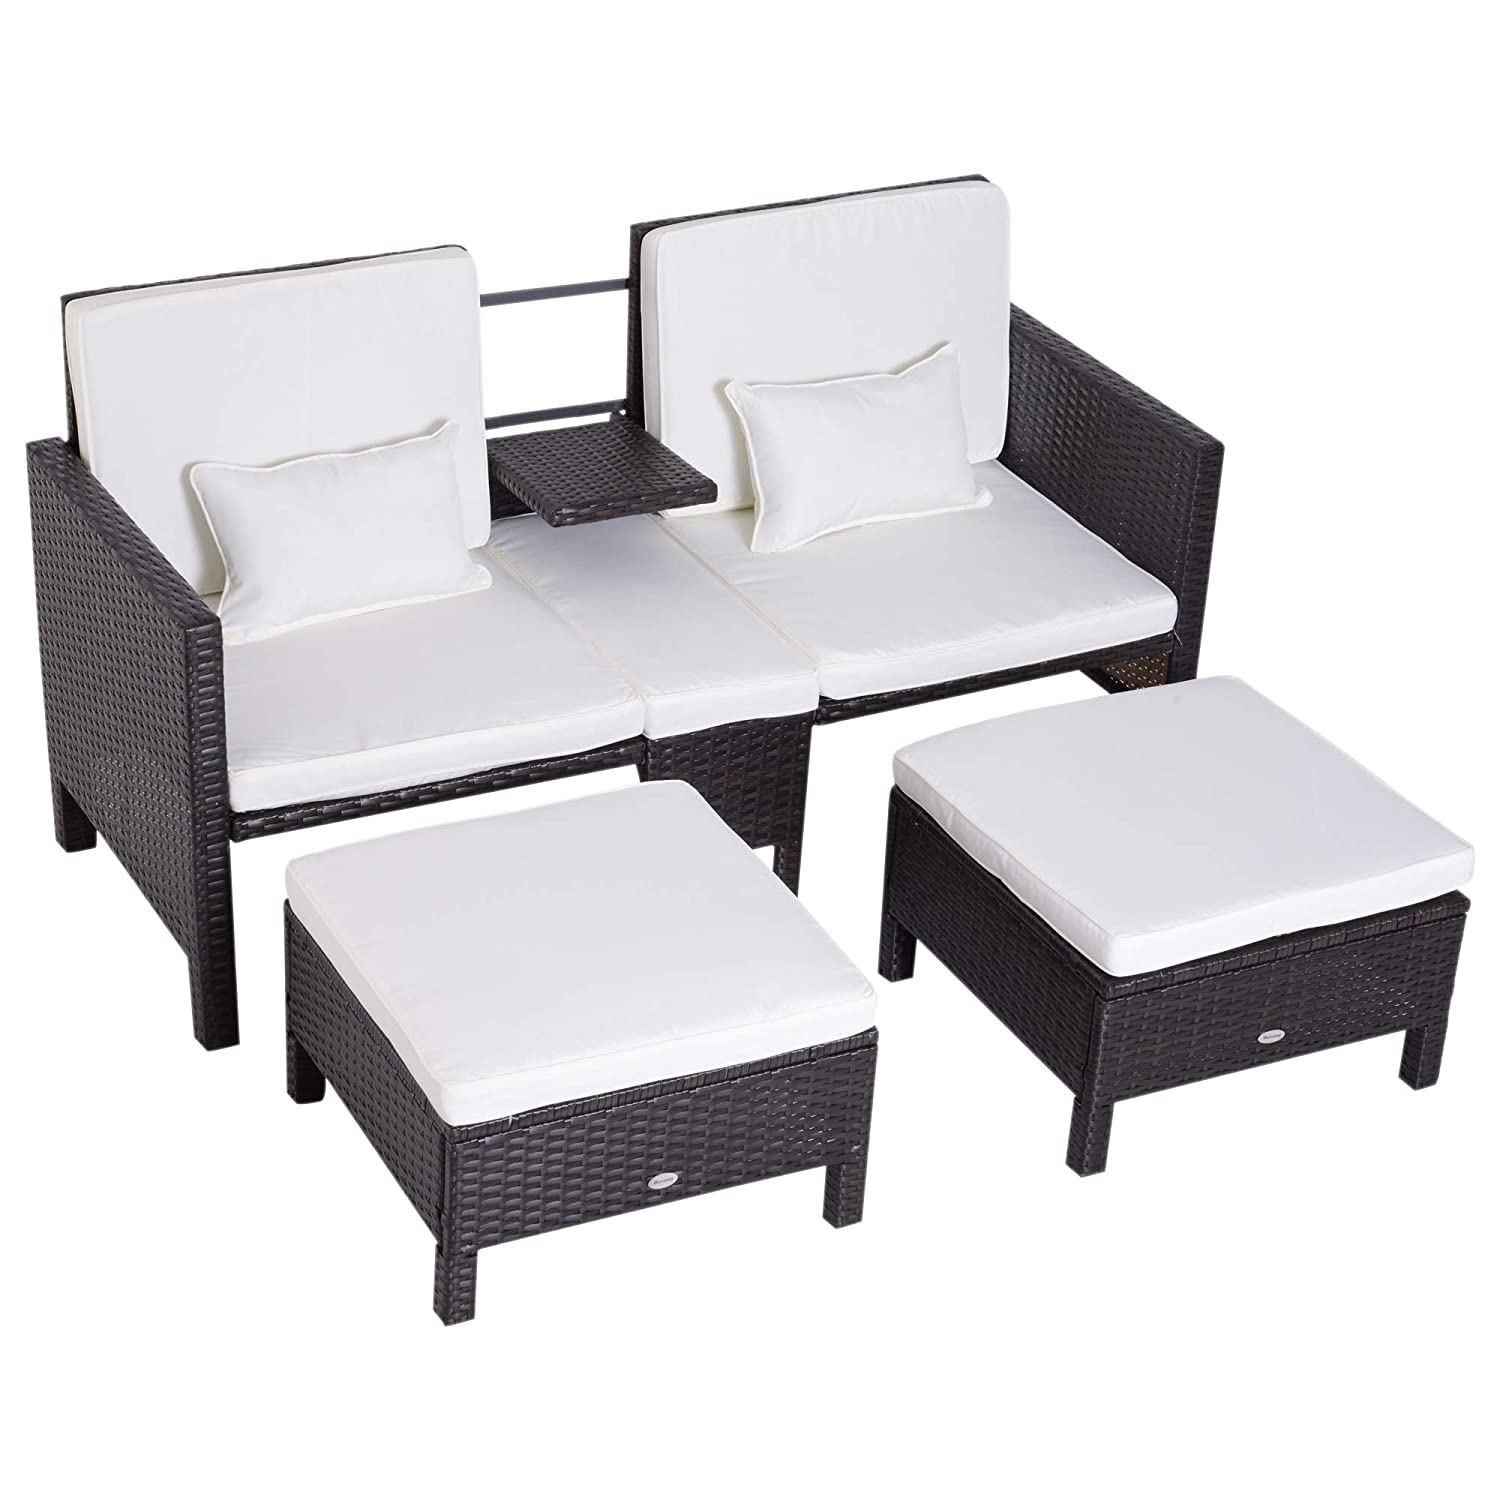 Amazon com outsunny 3 piece loveseat and nested ottoman outdoor furniture set with adjustable armrest garden outdoor